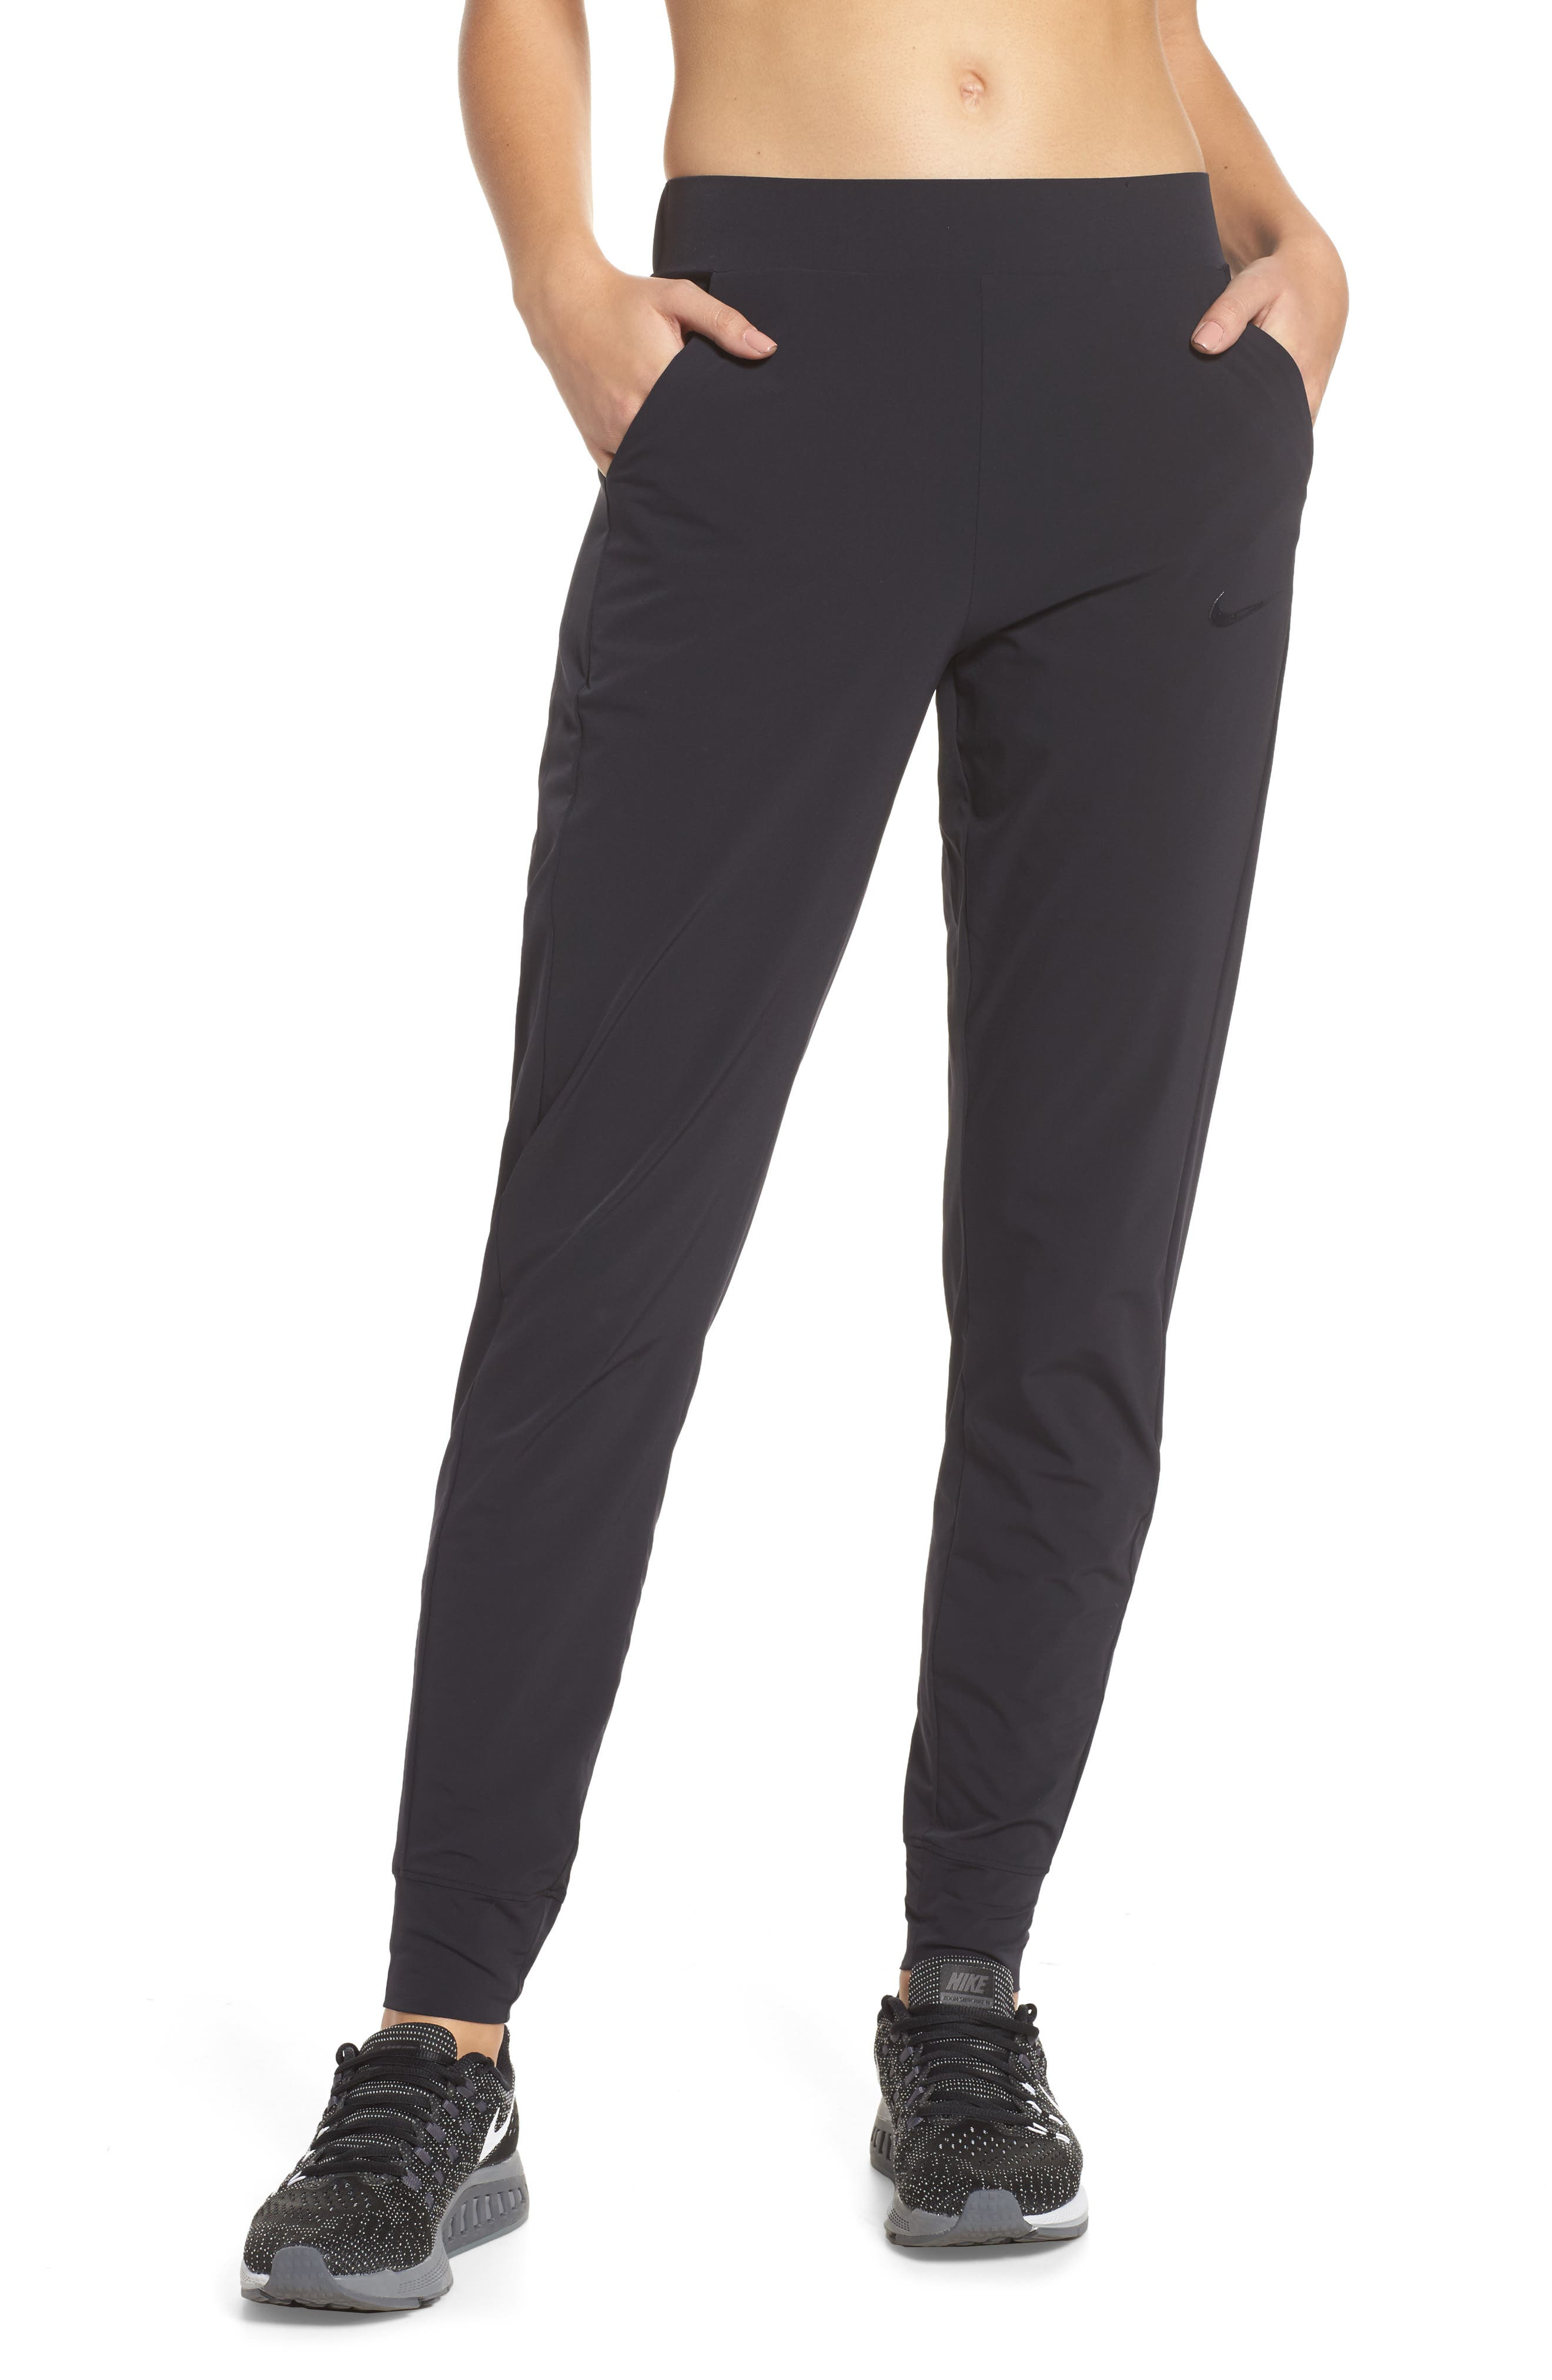 Bliss Training Pants,                         Main,                         color, BLACK/ CLEAR